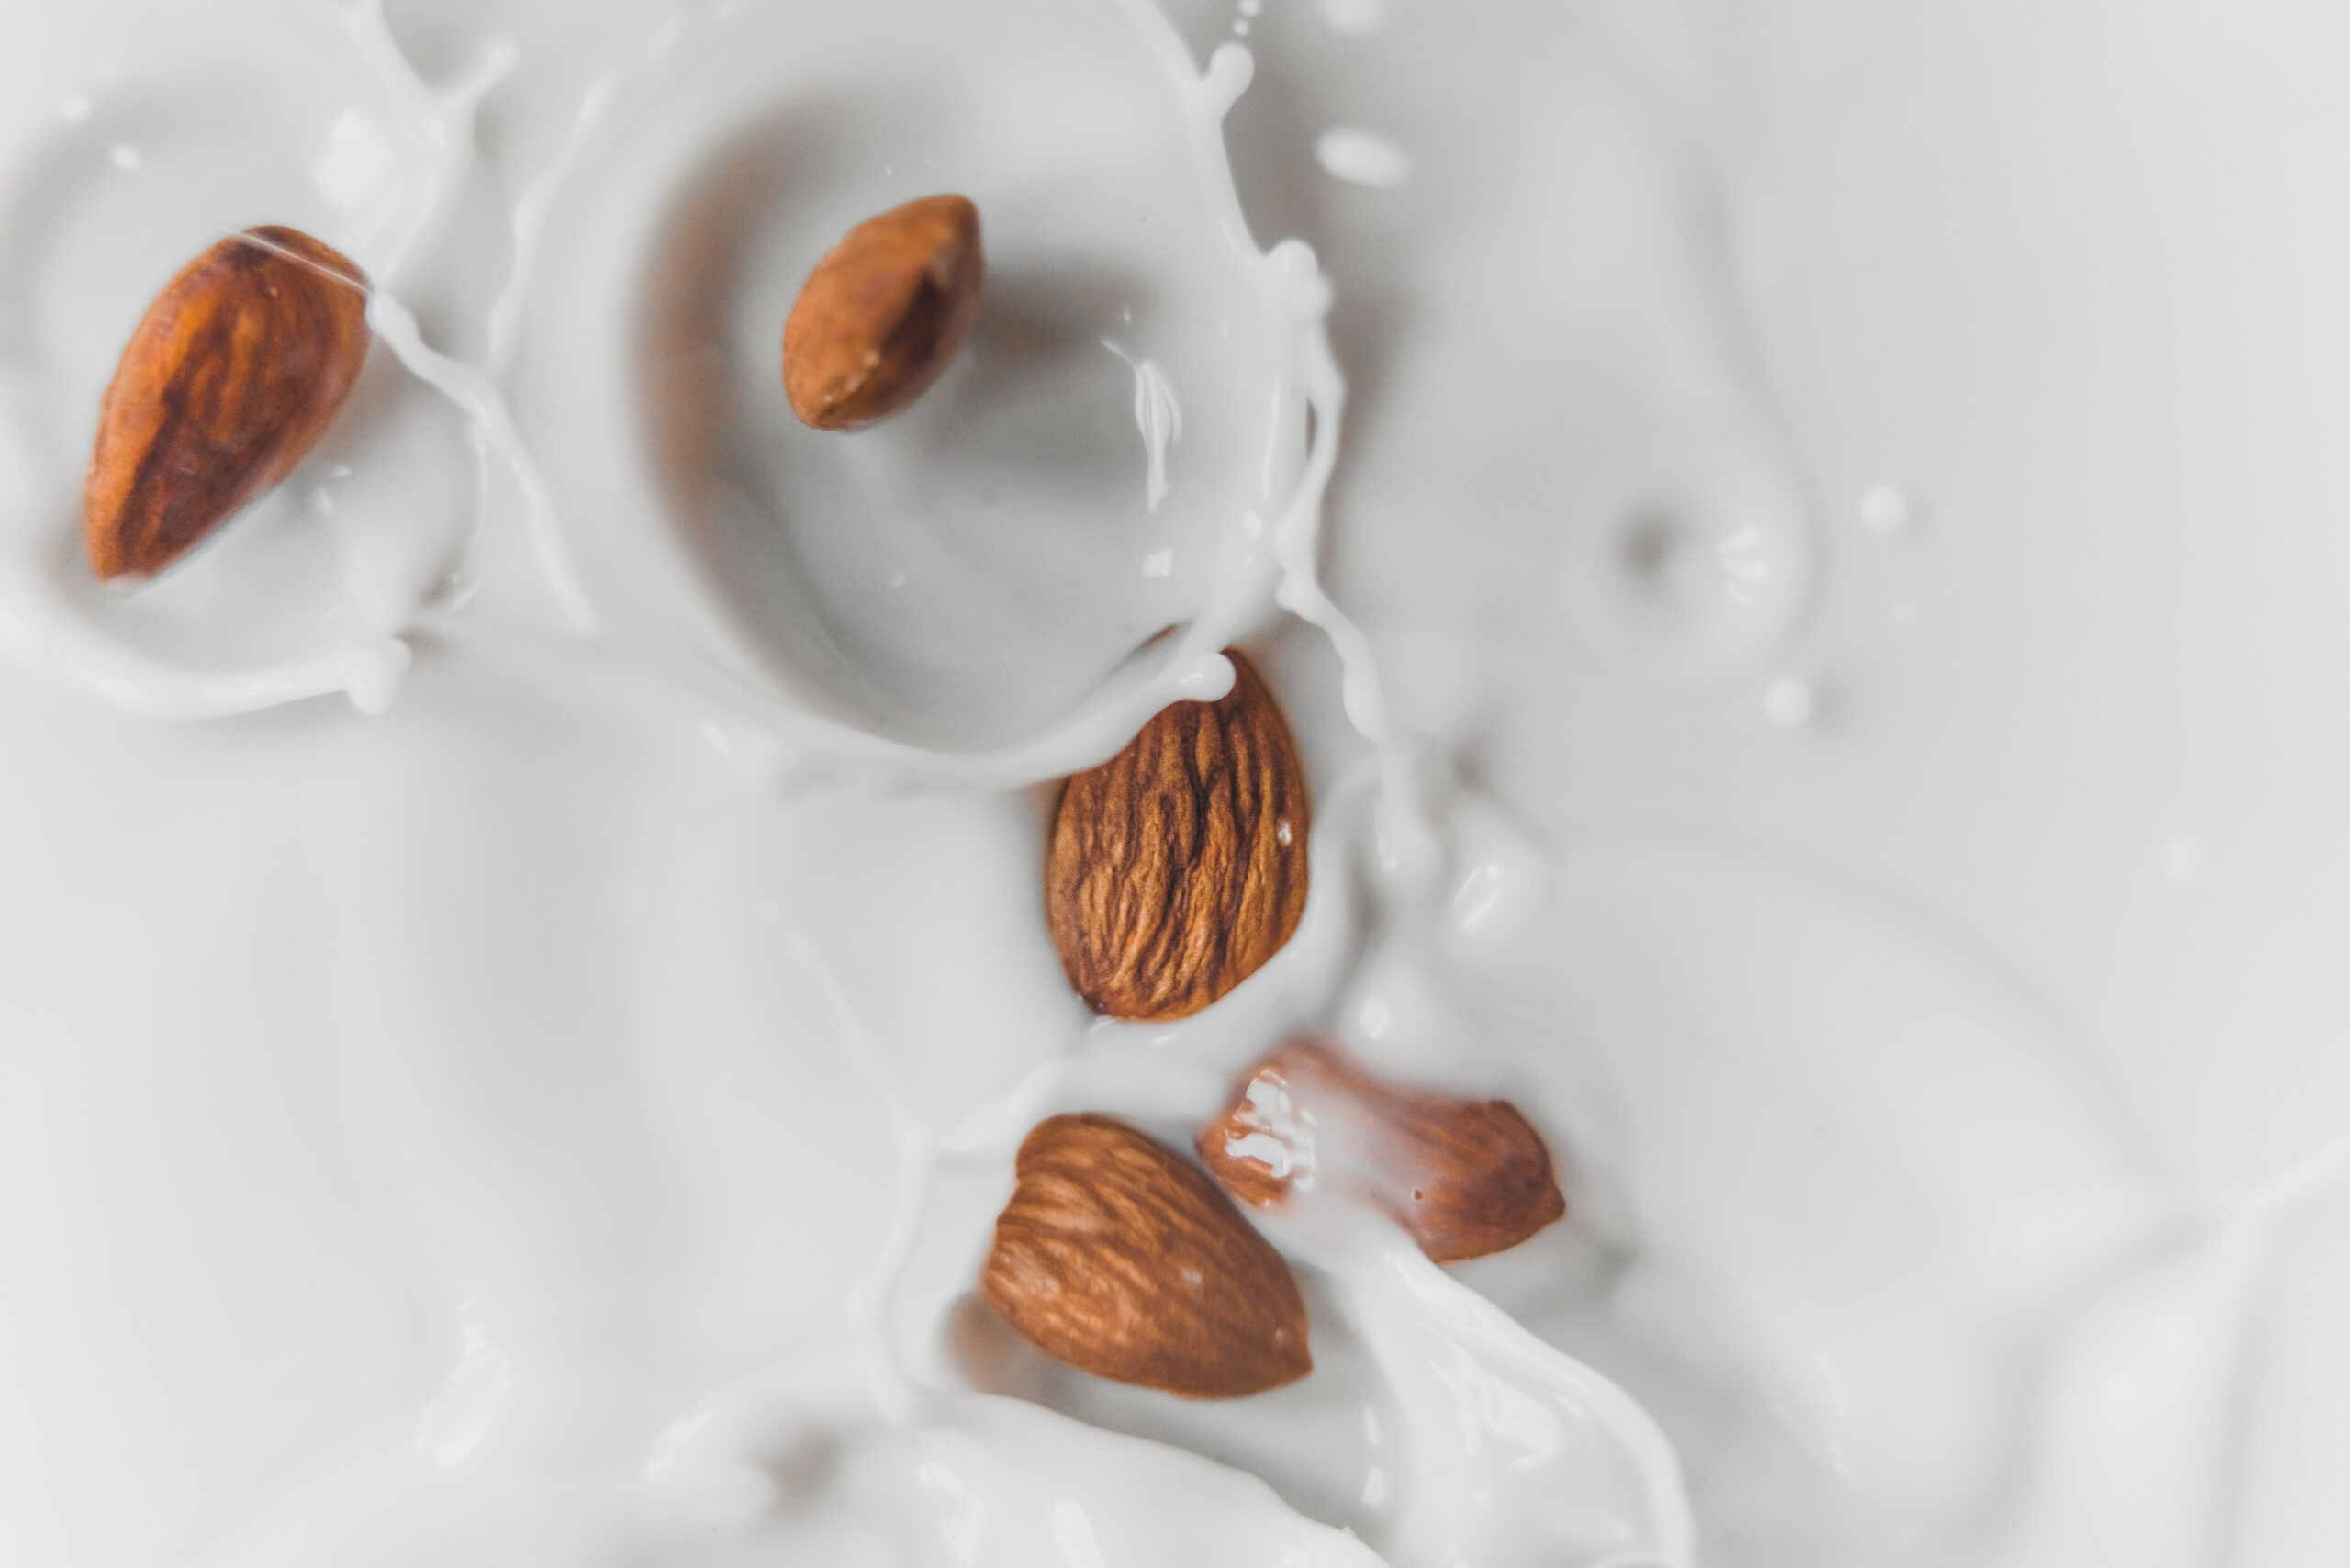 almonds falling into a cup of milk